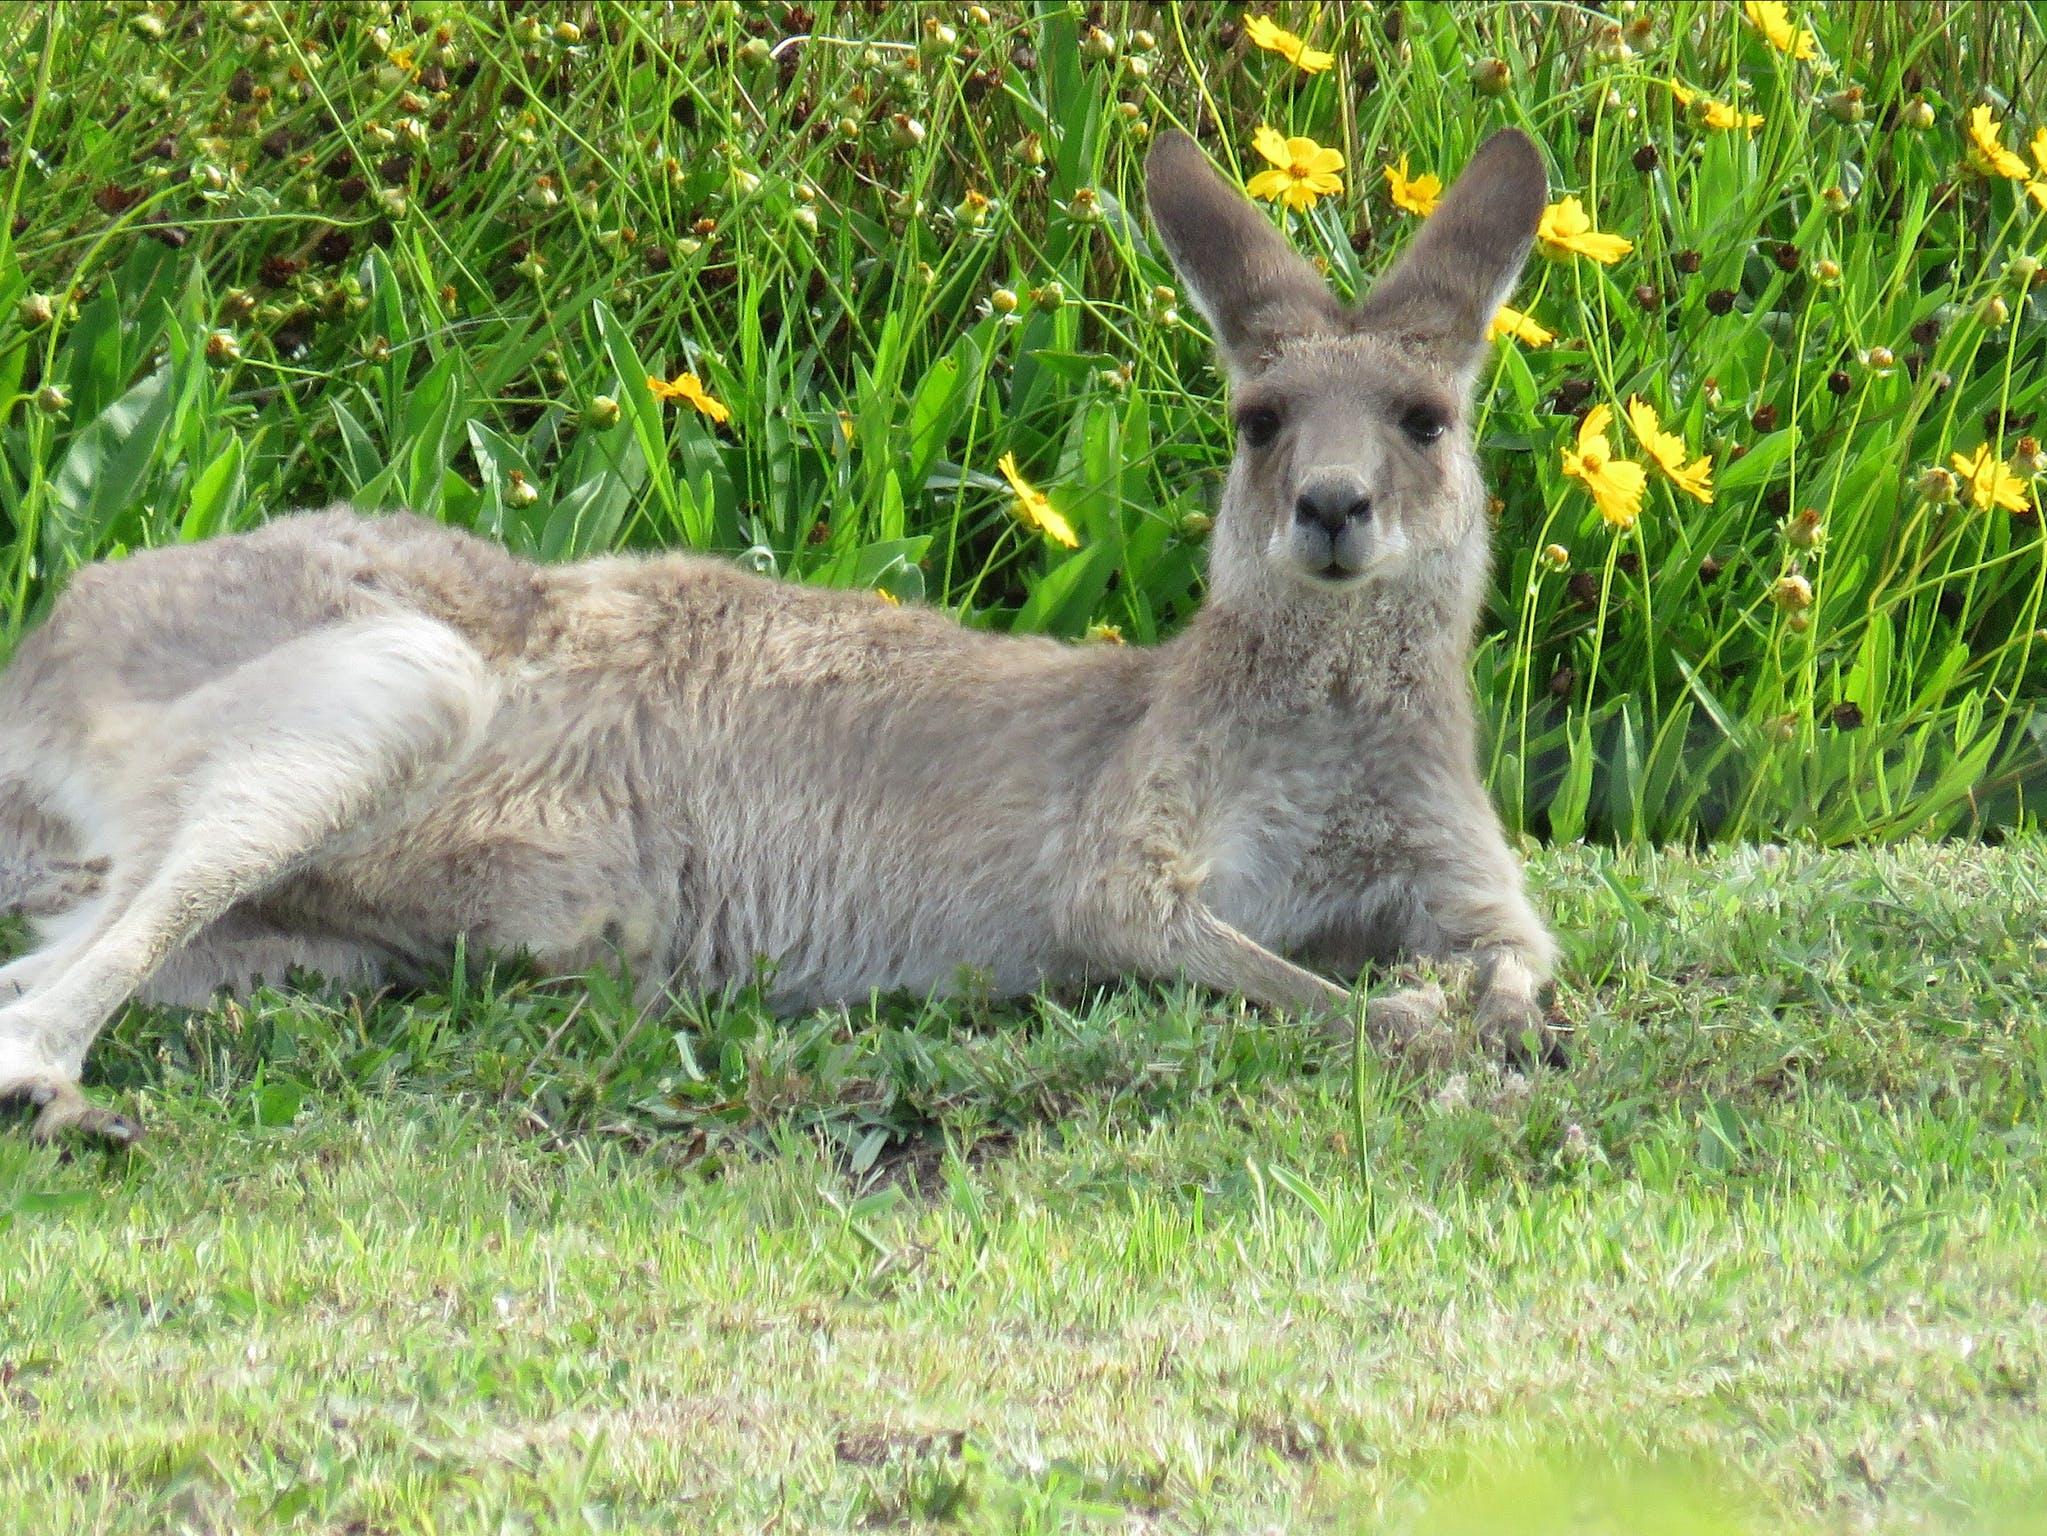 Grey Kangaroo in their backyard